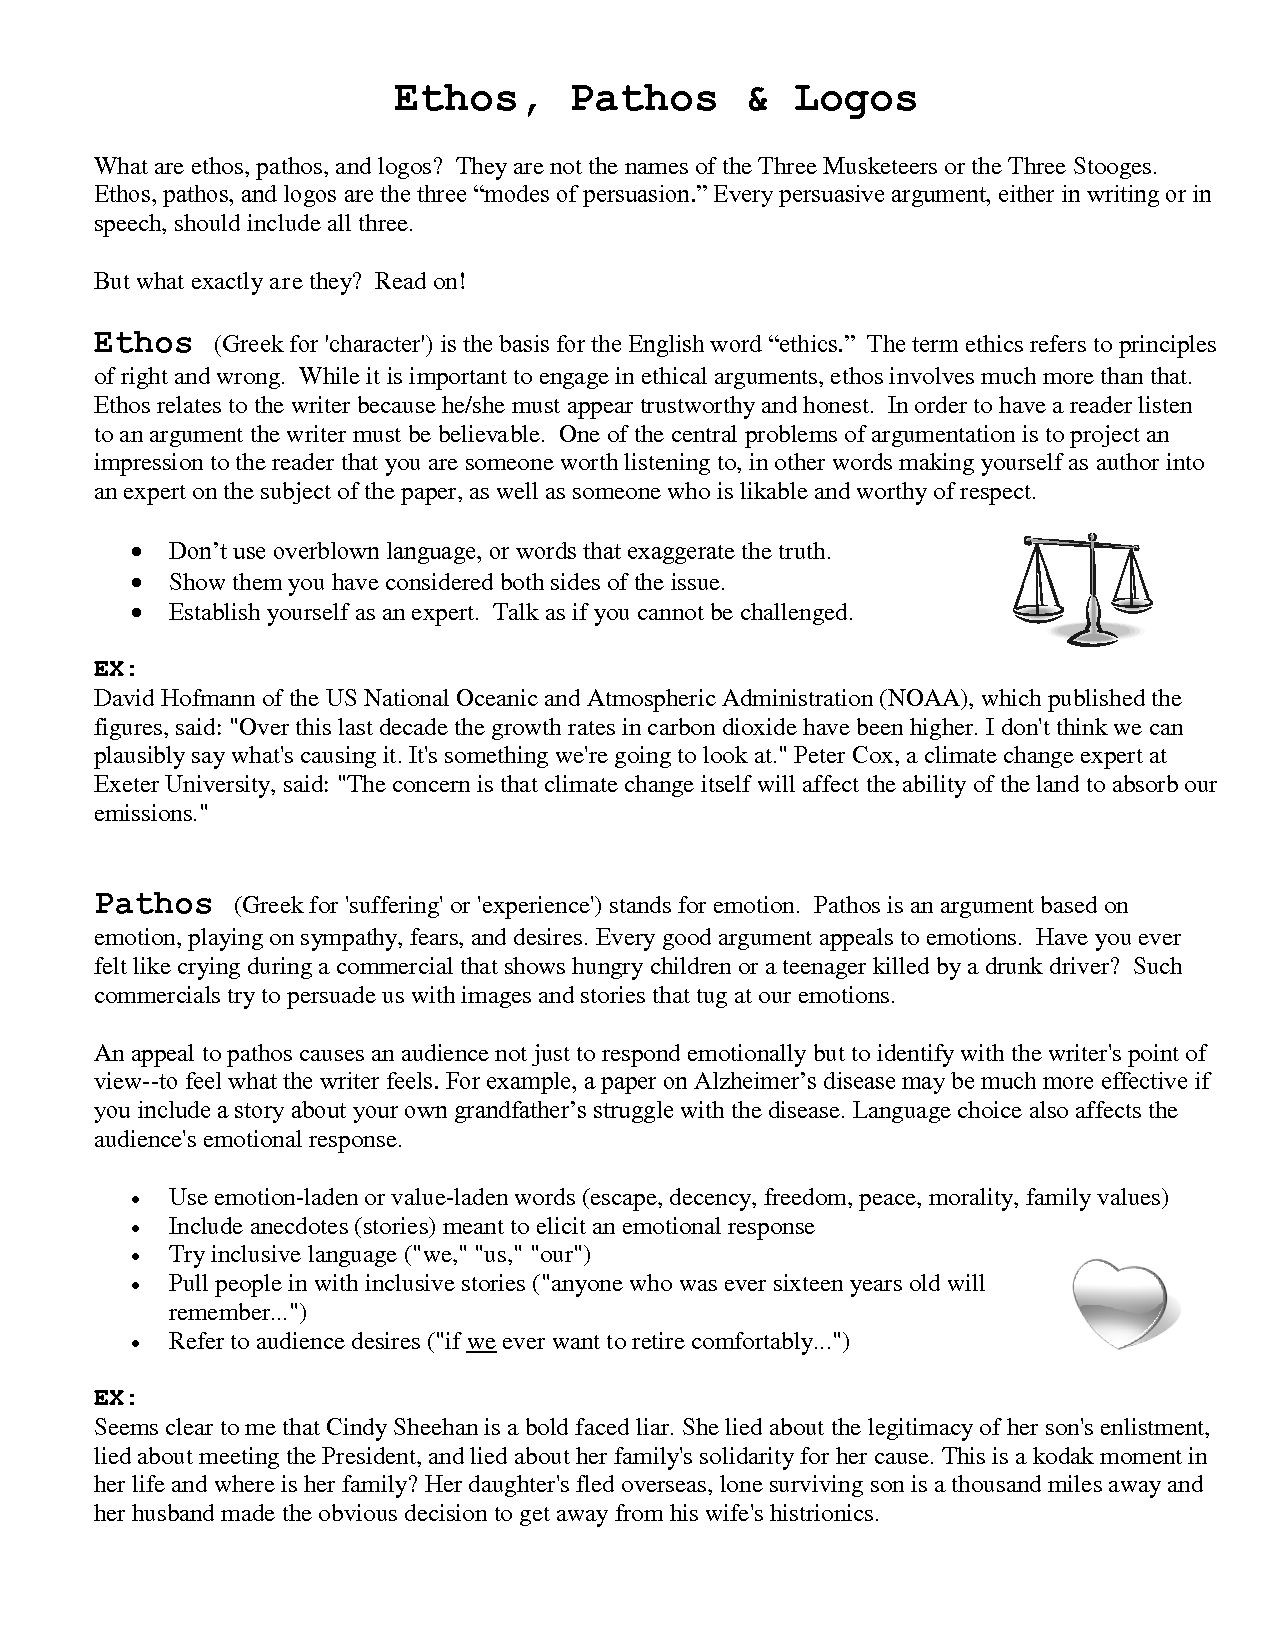 Ethos Pathos Logos Worksheet Answers Ethos Pathos Logos